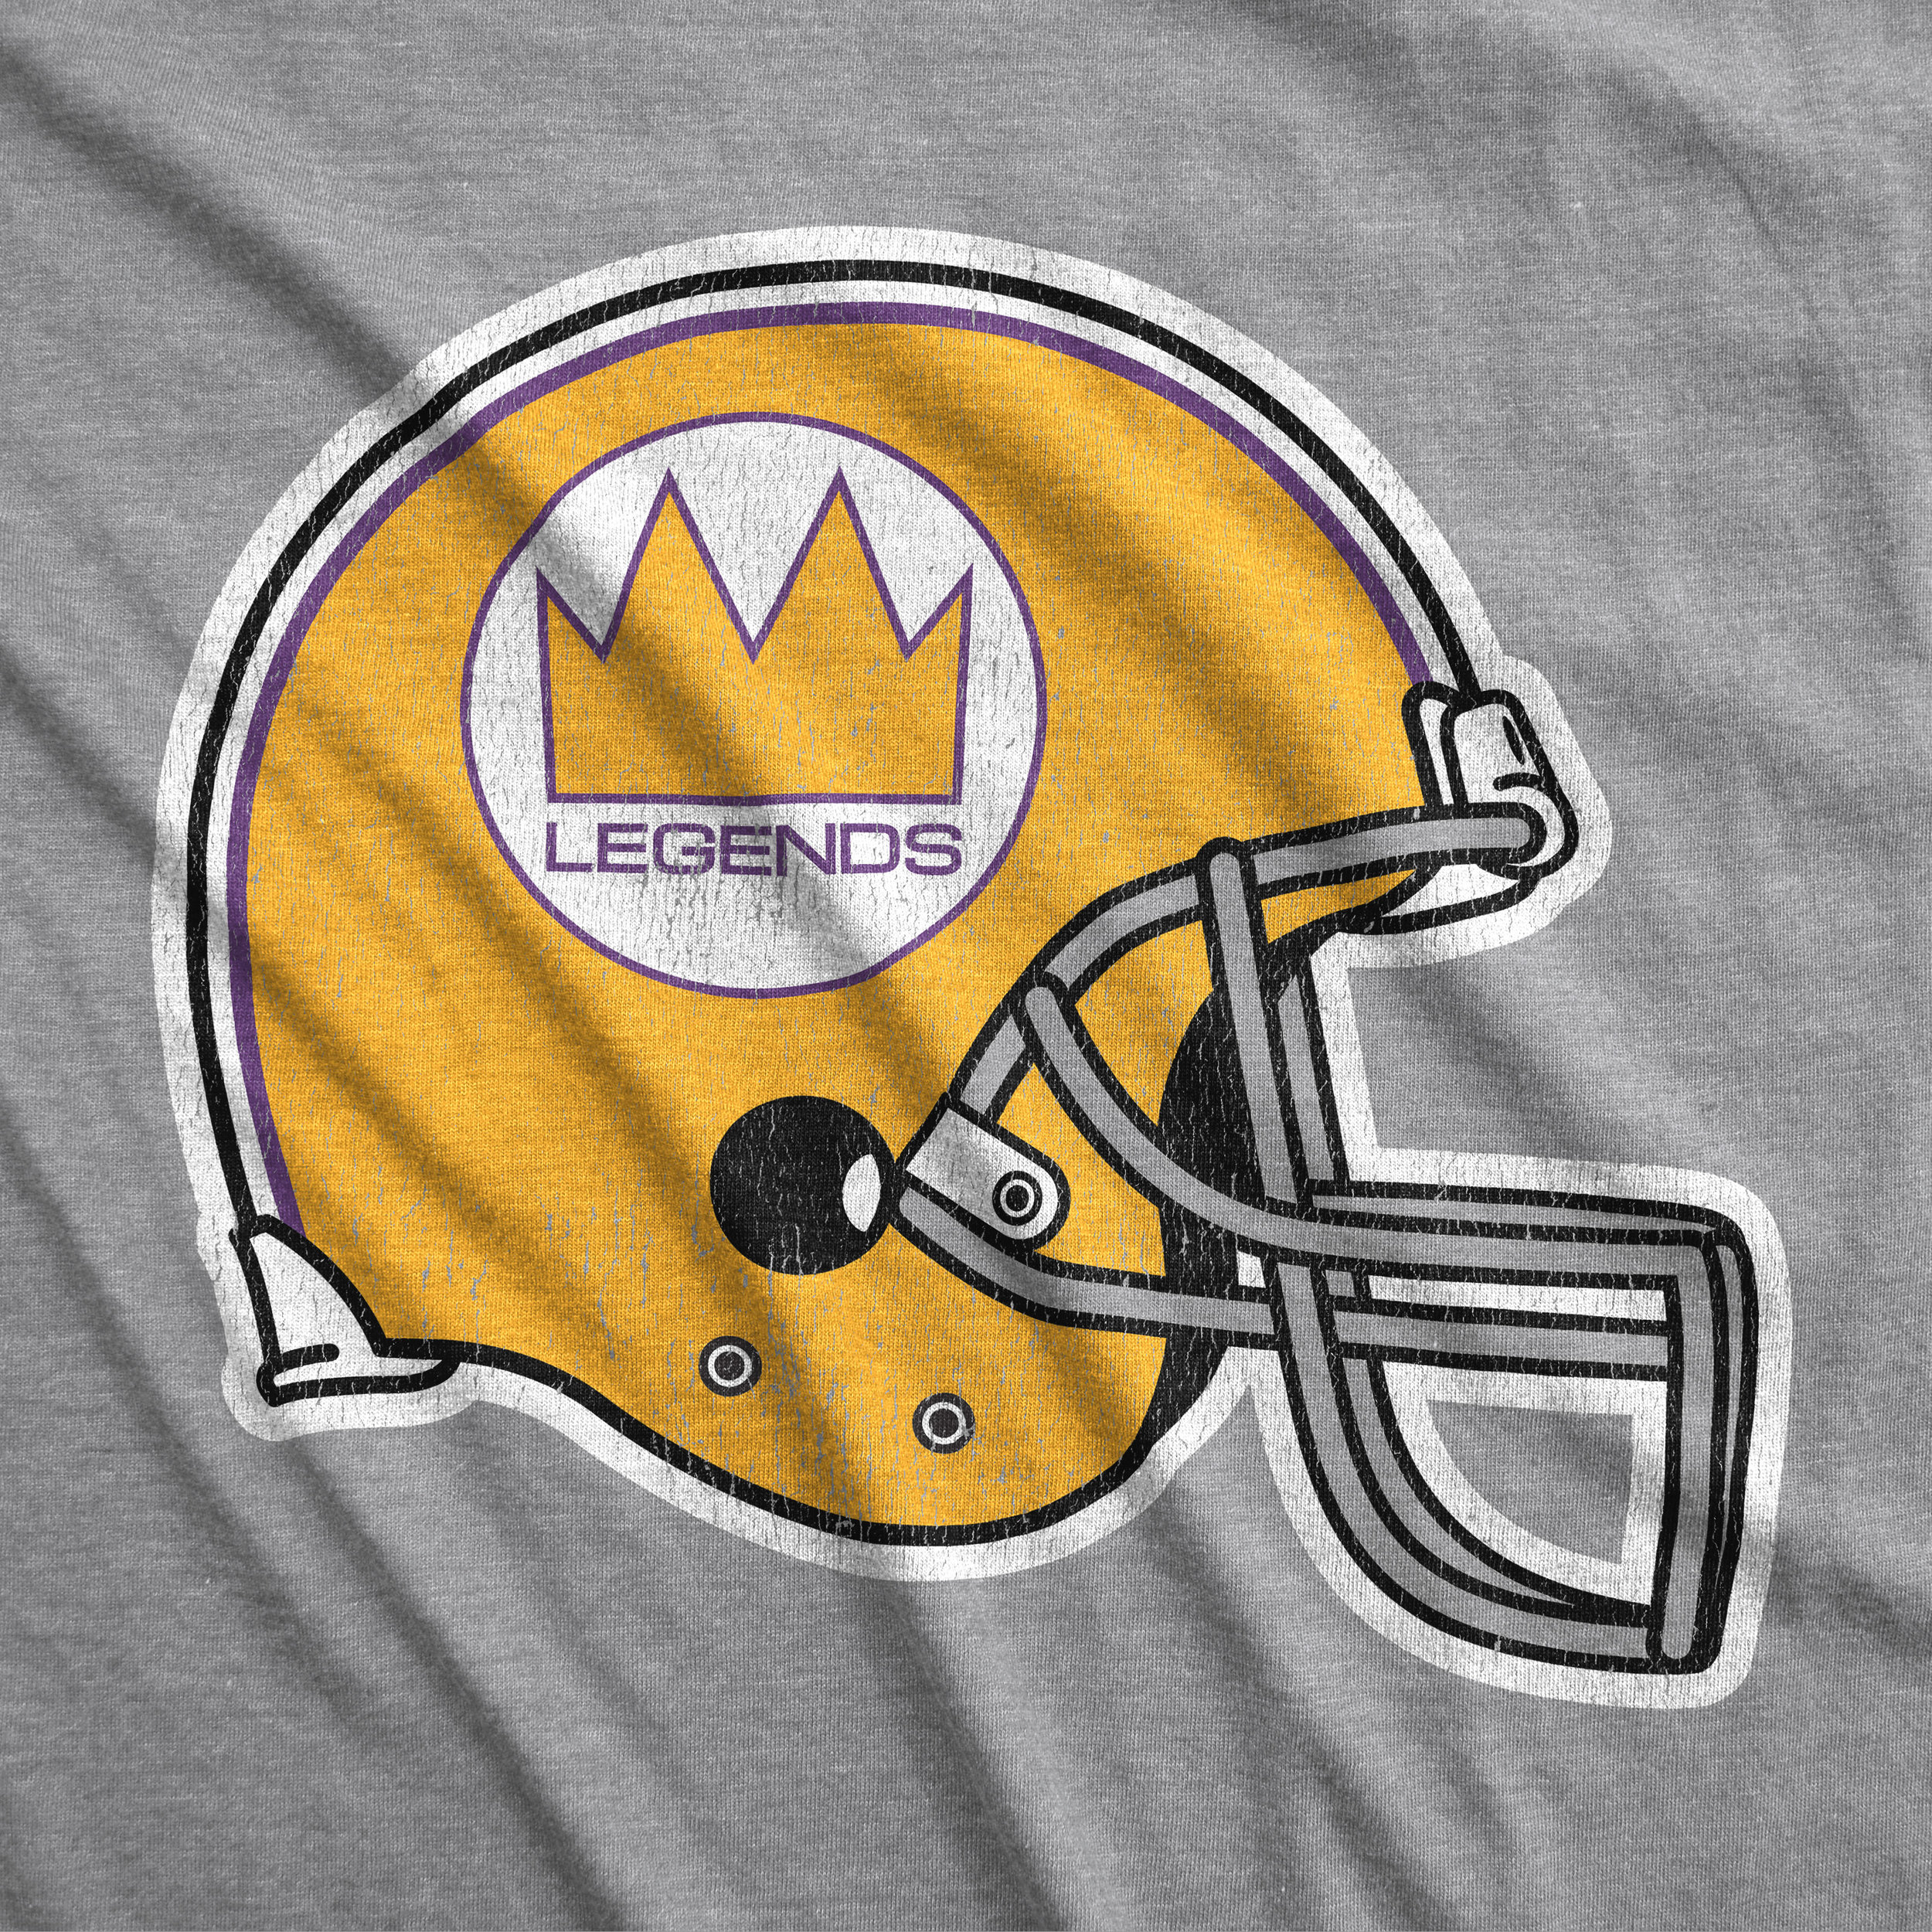 Legendary Kings Helmet.jpg